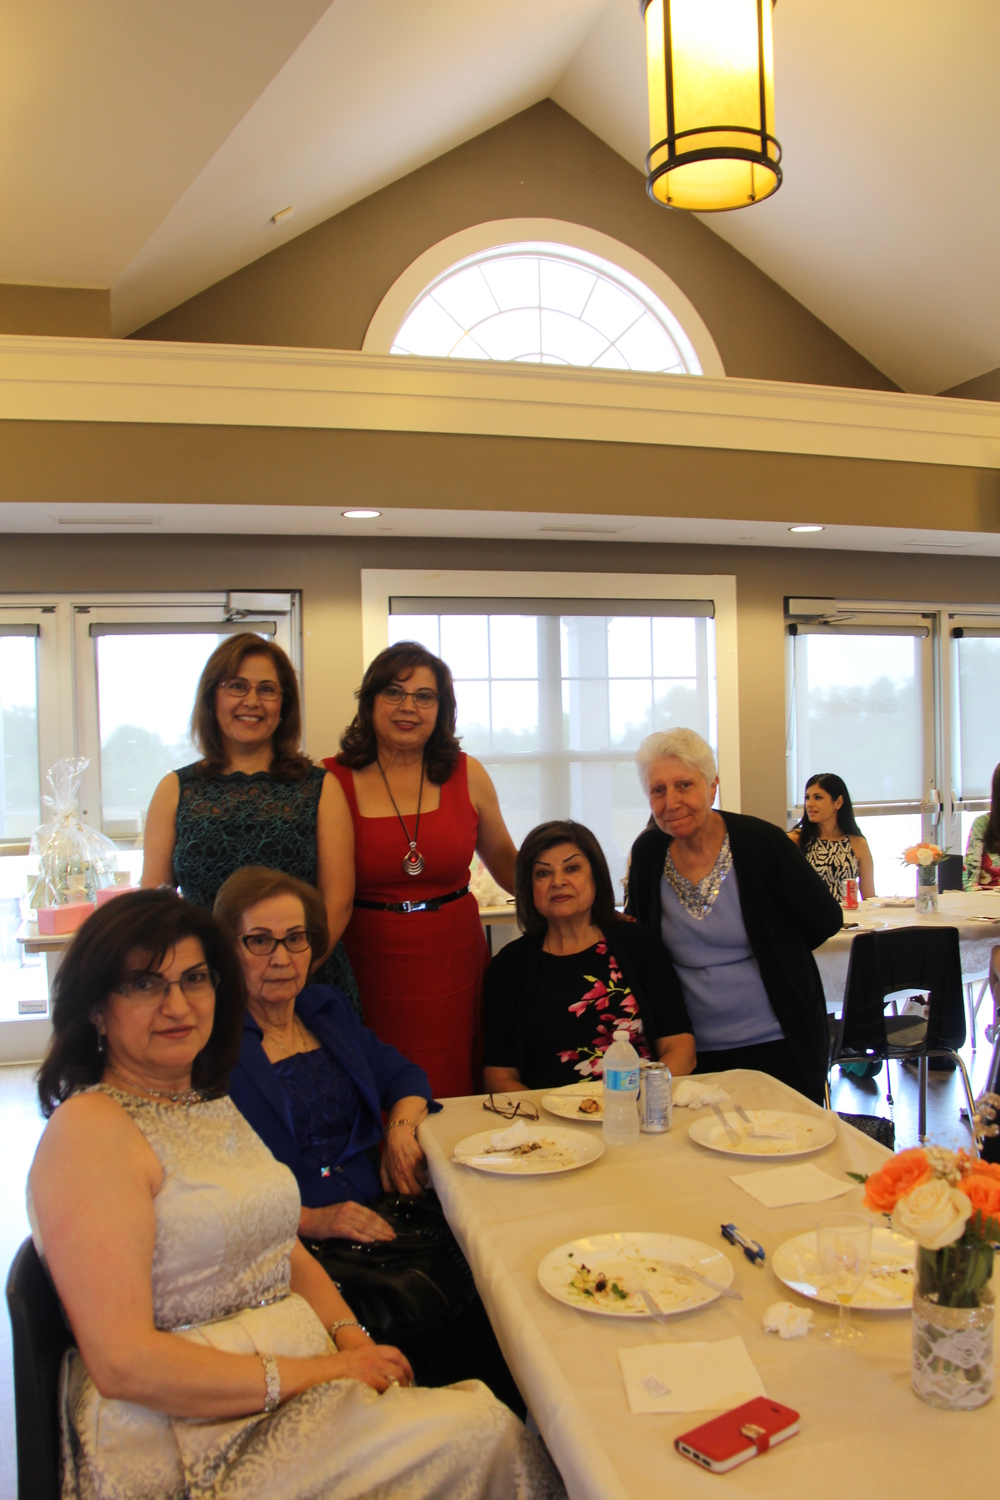 Nataly's Bridal Shower 416.JPG